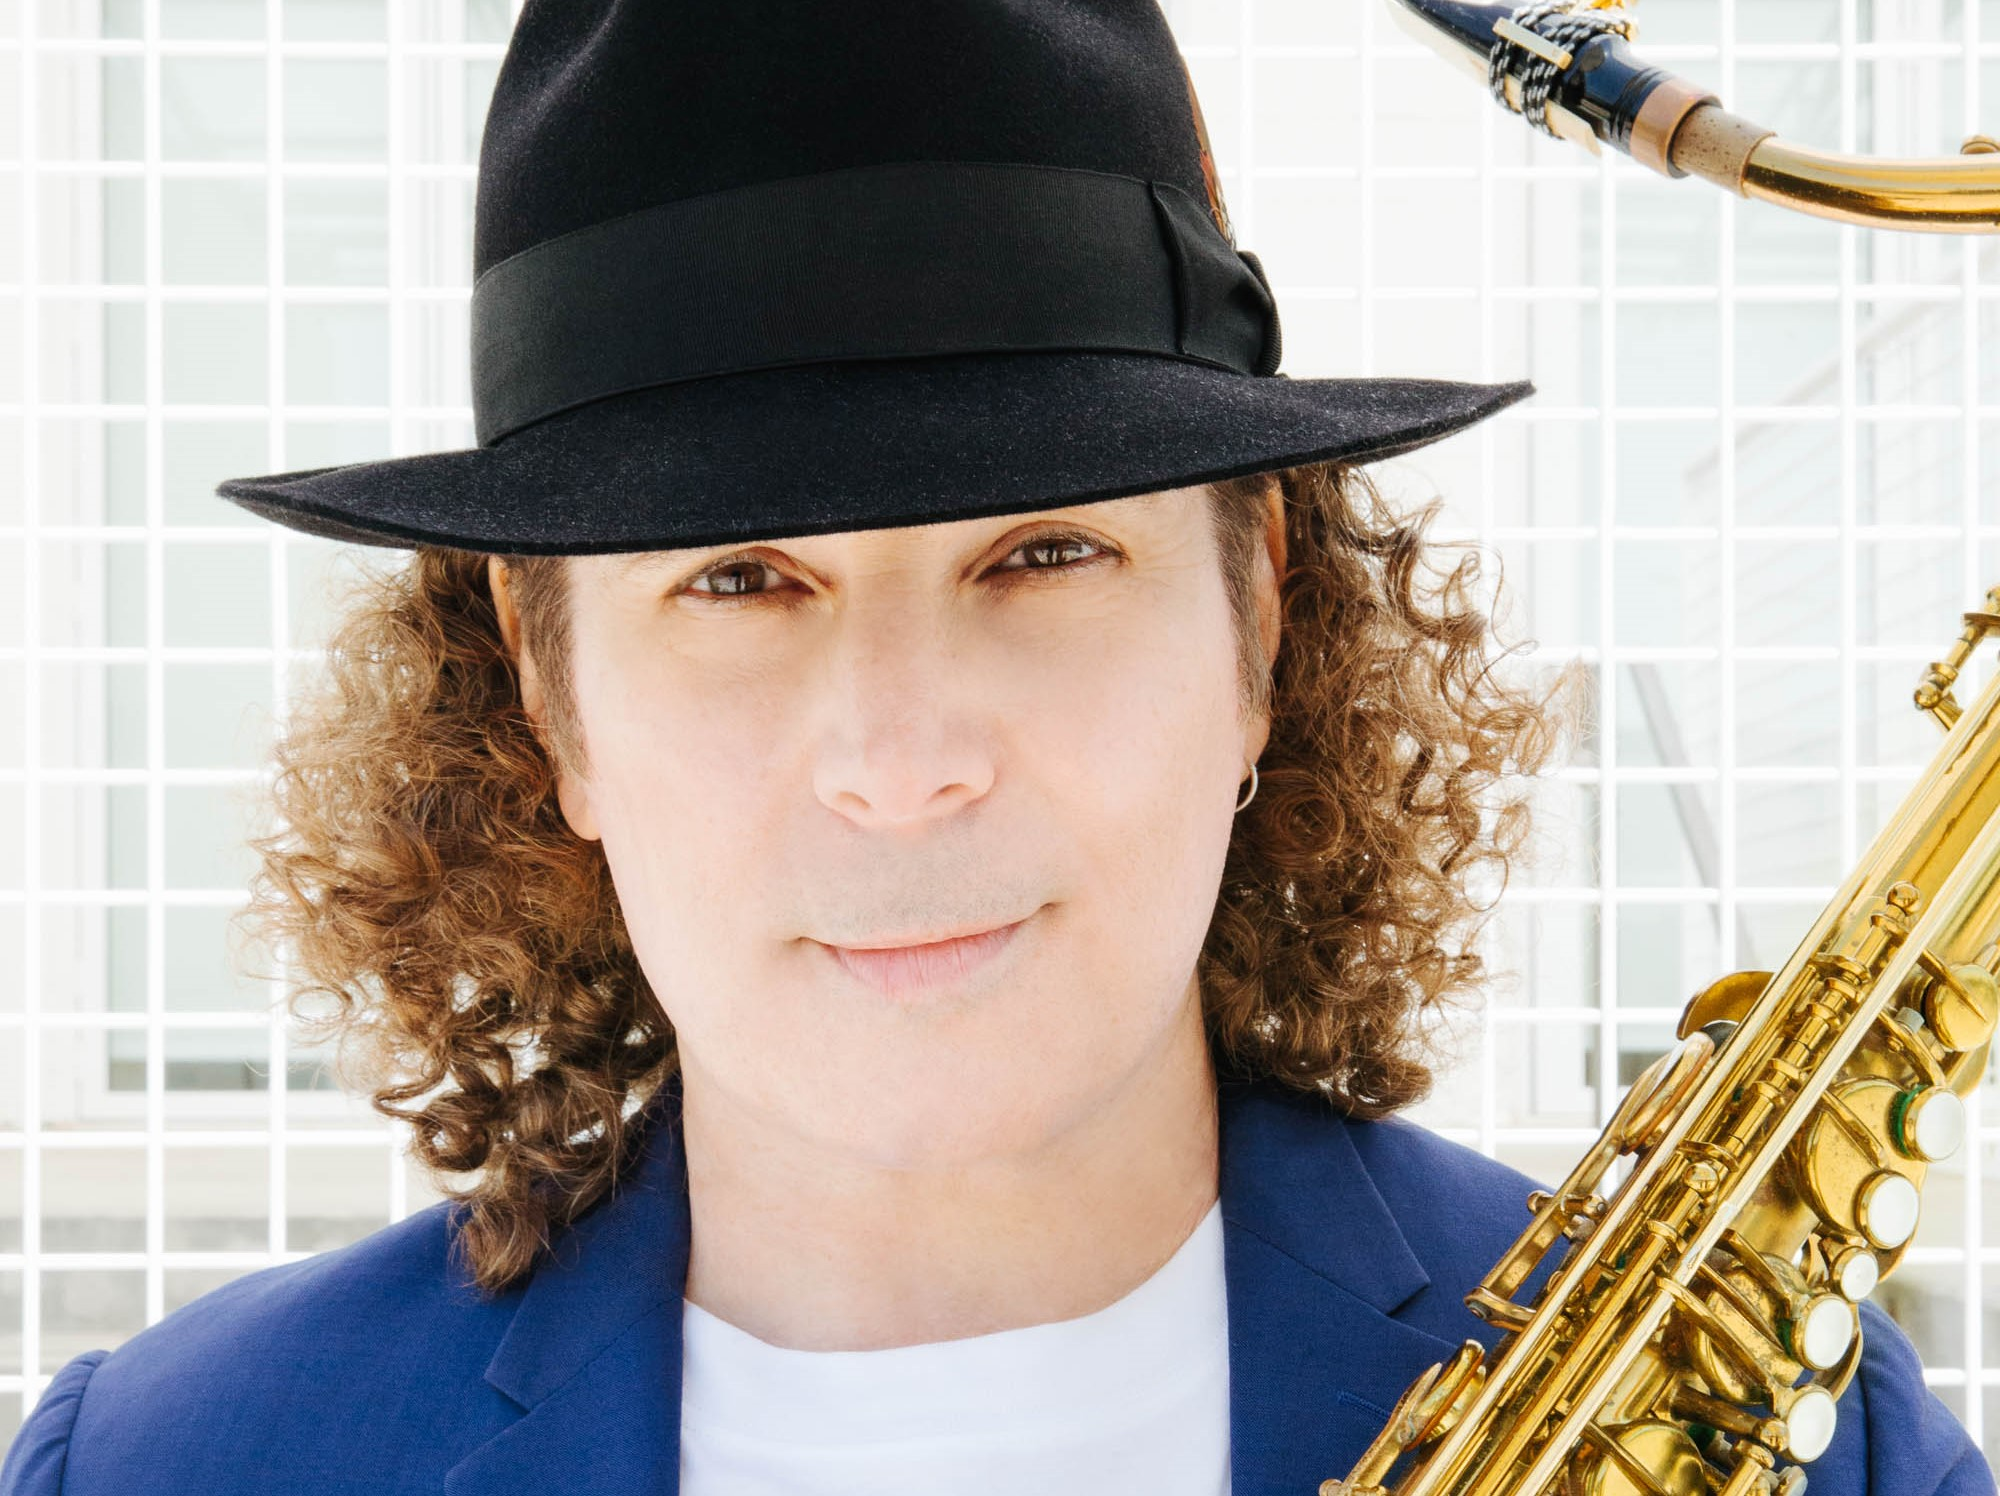 Boney James Tour